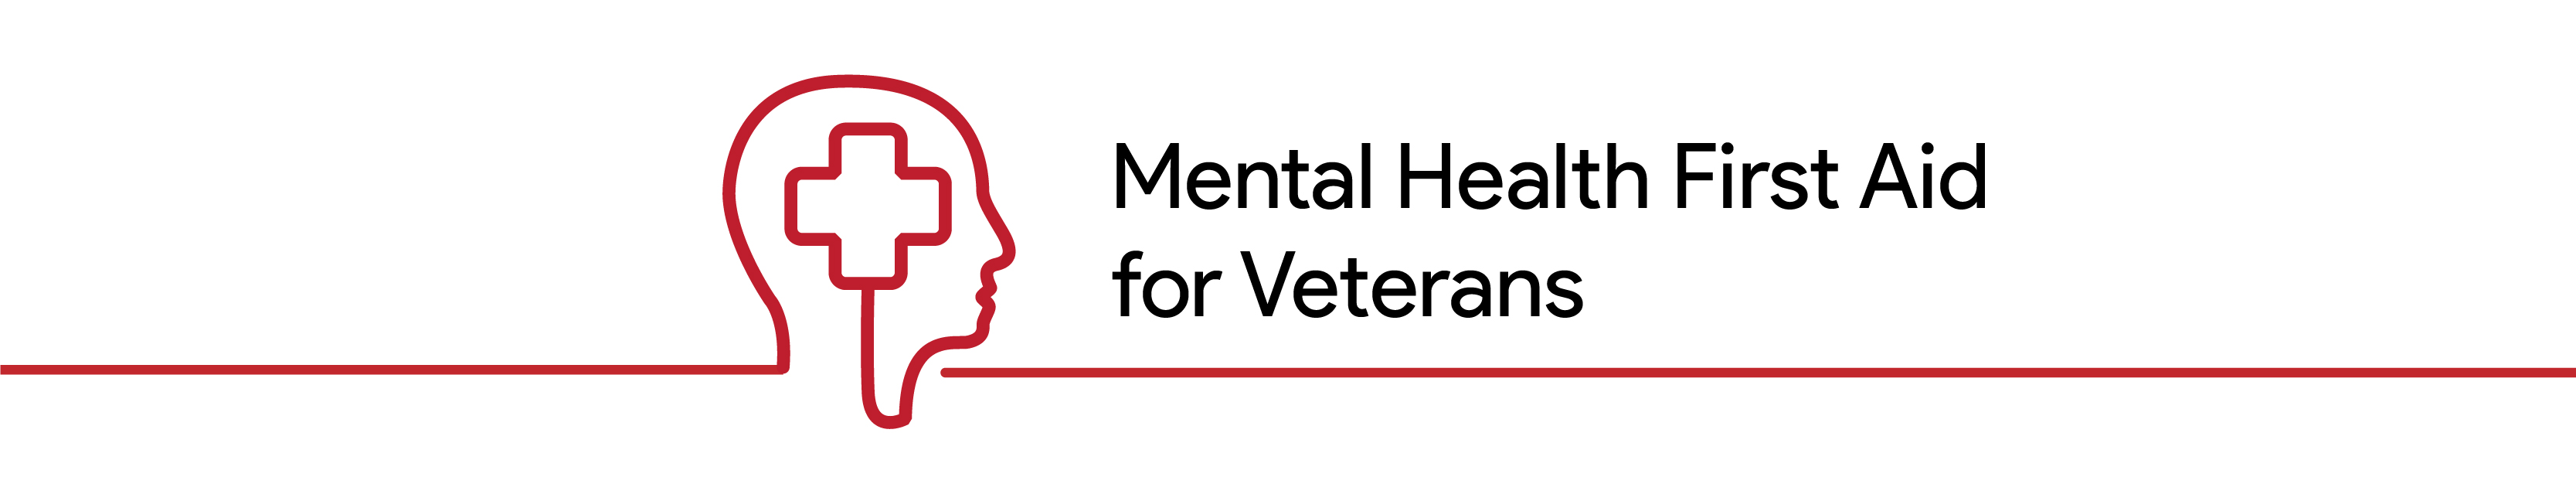 Mental Health First Aid for Veterans